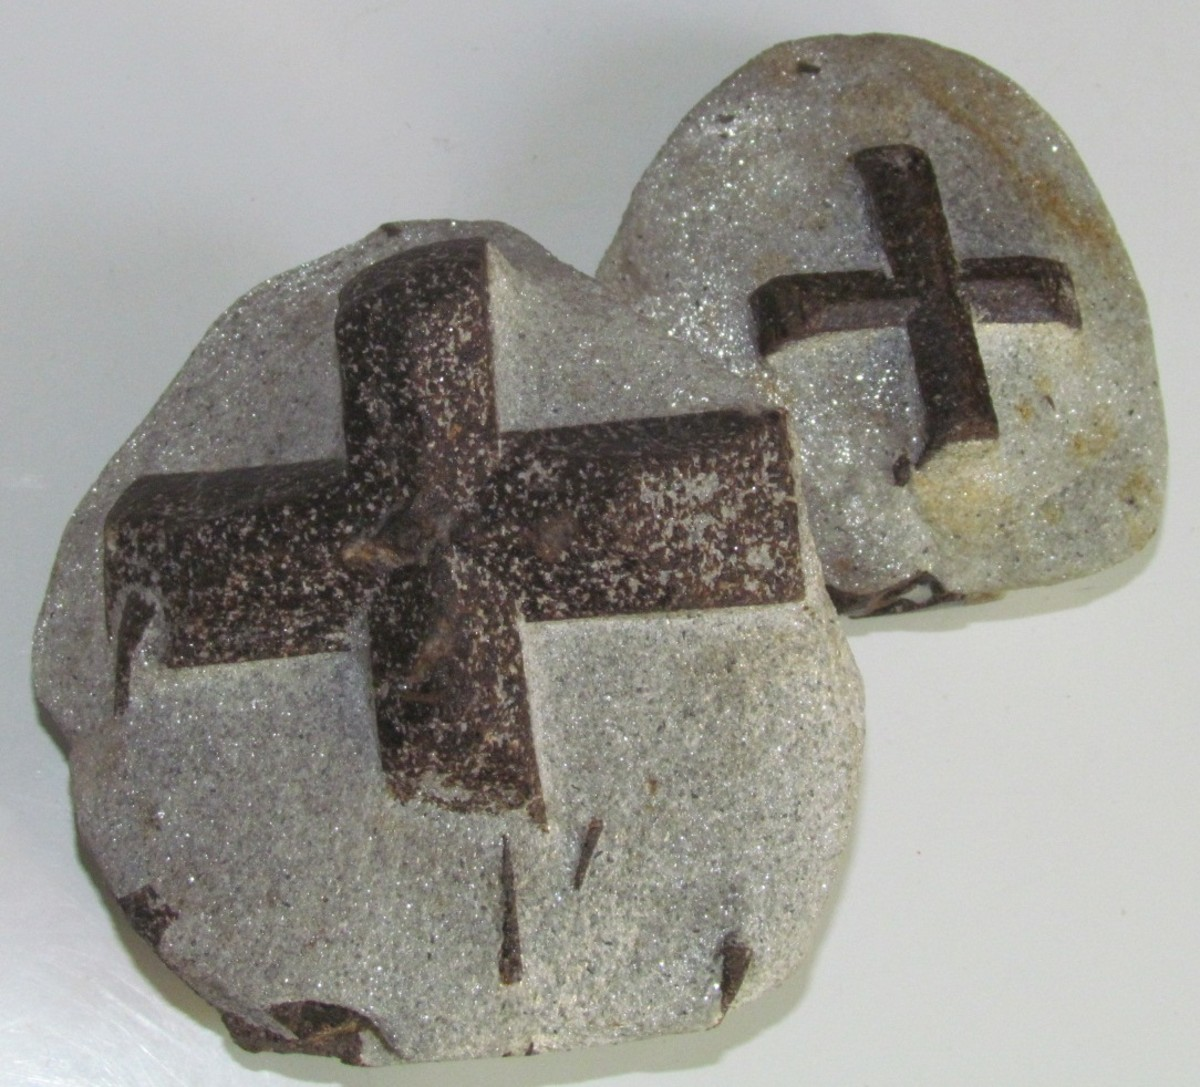 Staurolite is also known as the faery stone.